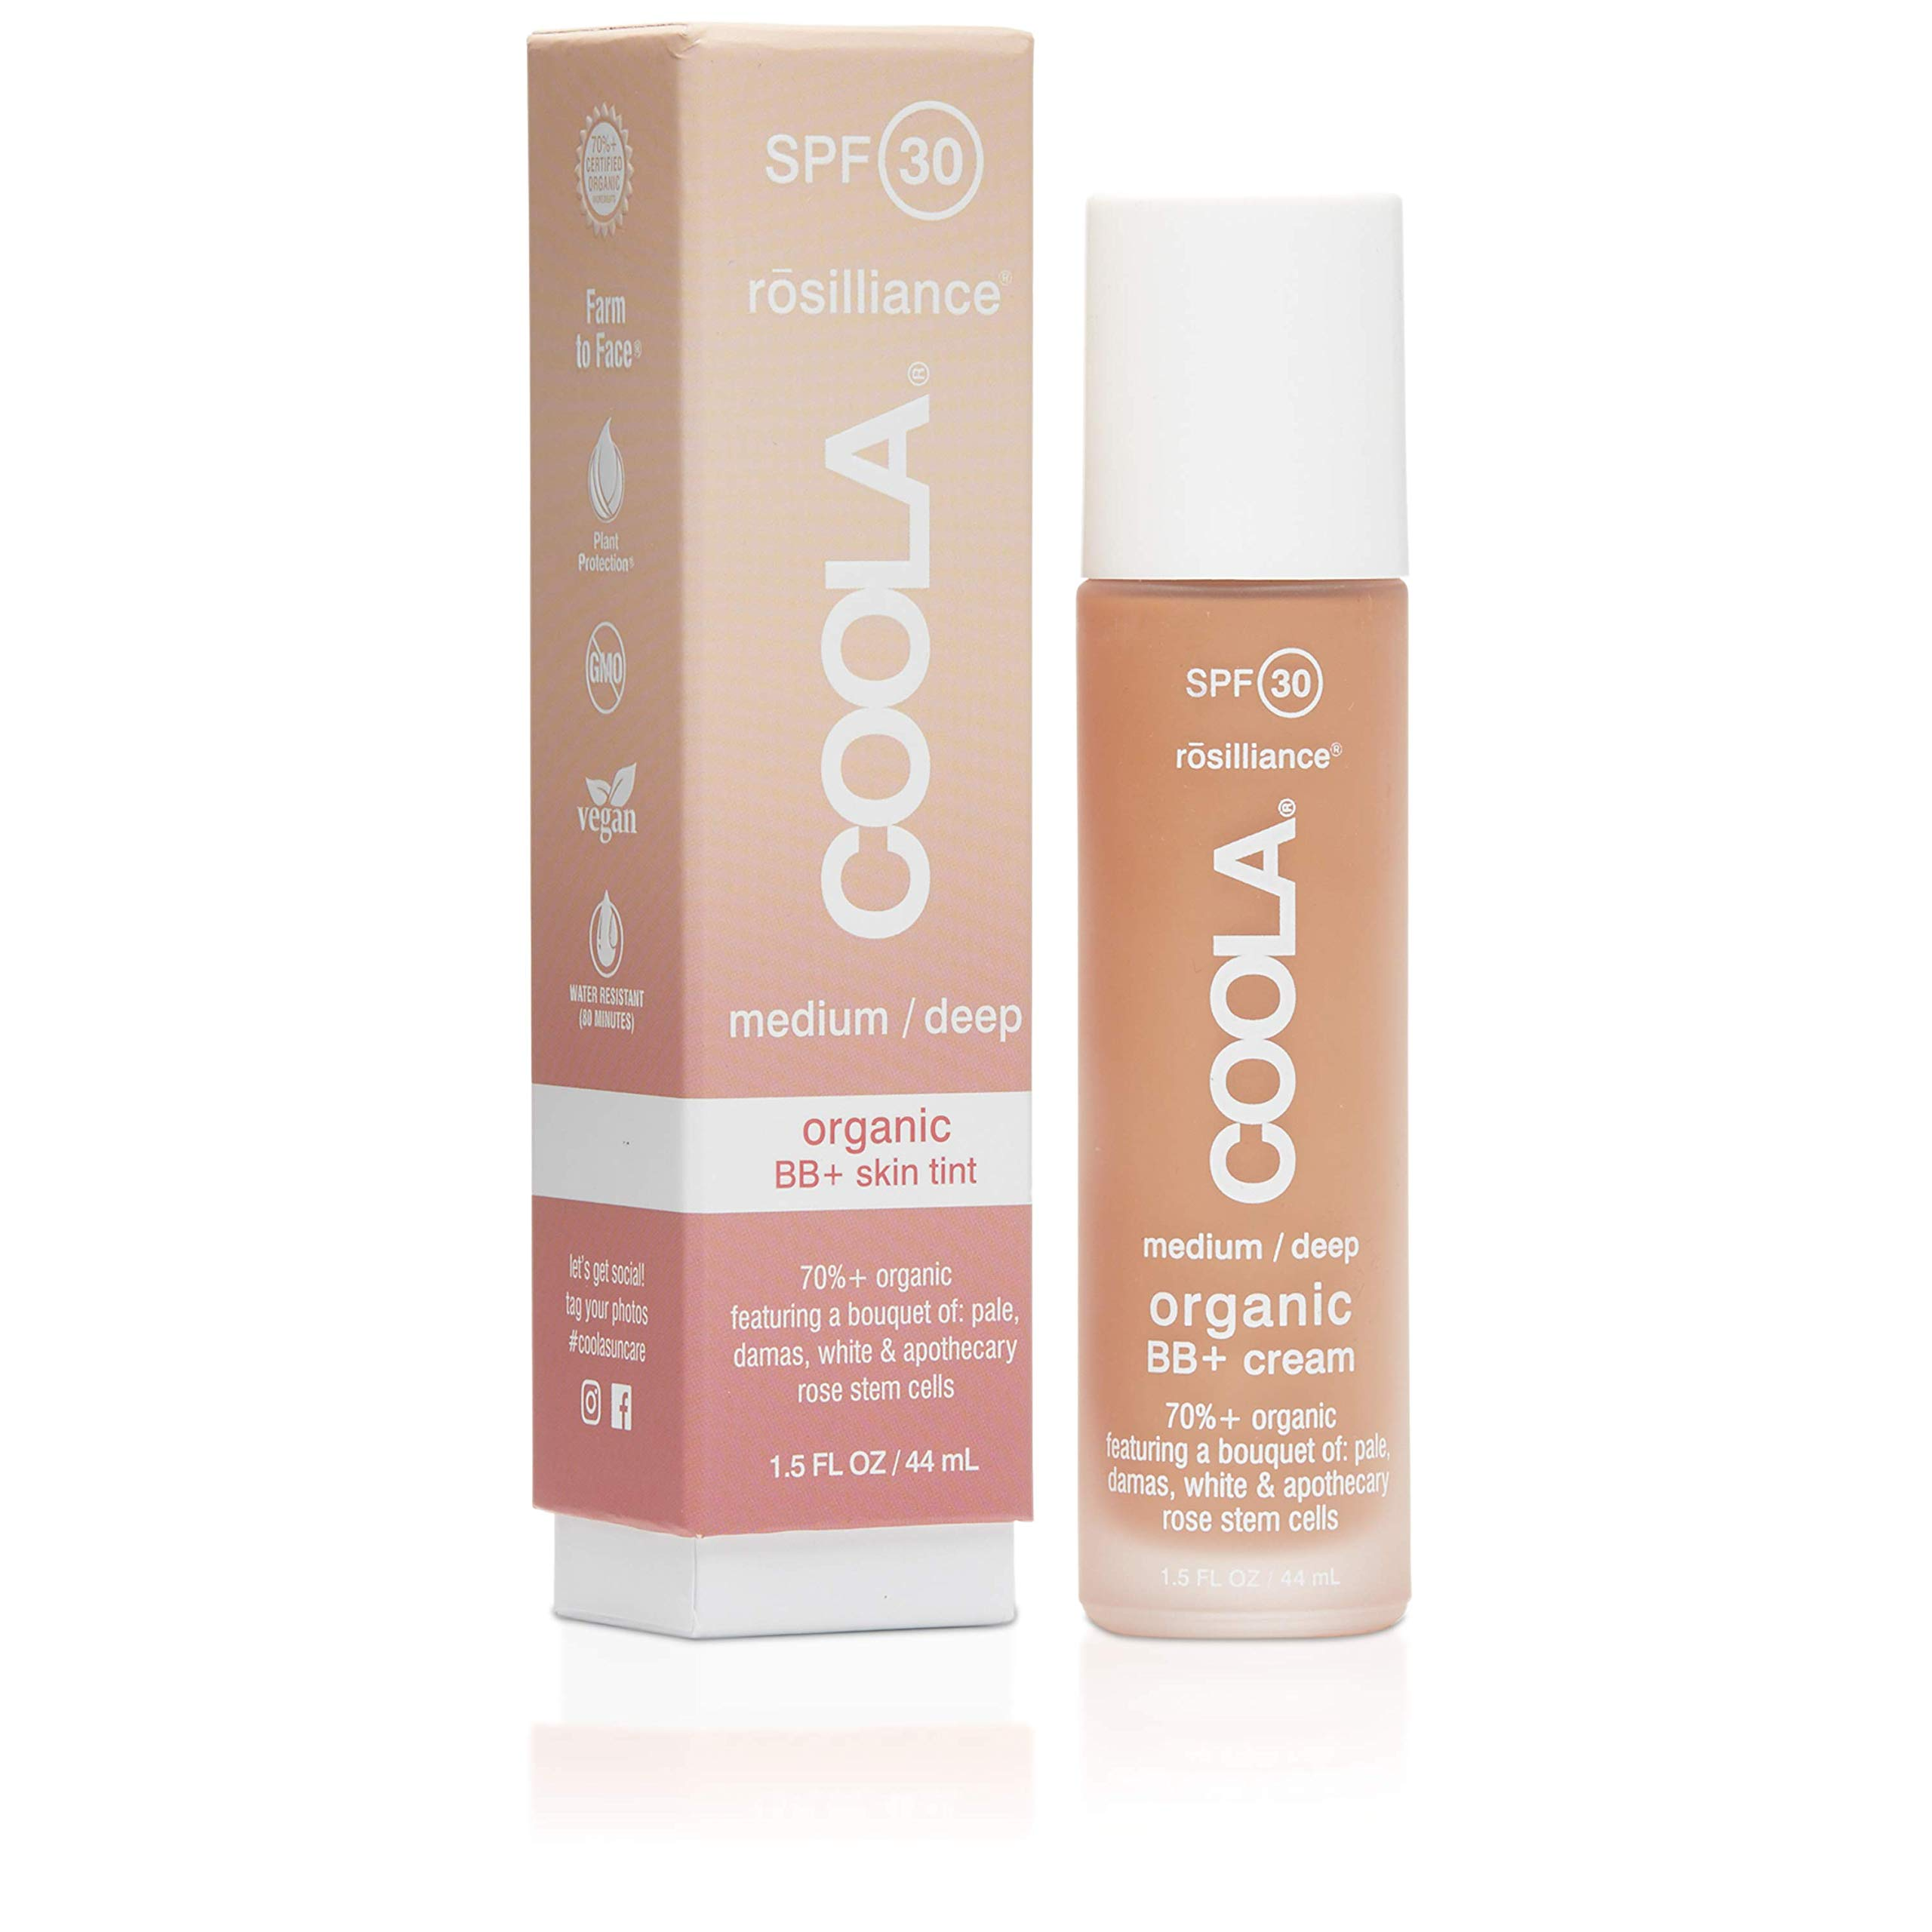 COOLA Rosilliance Mineral BB+ Cream Tinted Organic Sunscreen, Broad Spectrum SPF 30, Vegan, Water-Resistant, Ultra-Moisturizing, Antioxidant Enriched, Light Medium by Coola Suncare